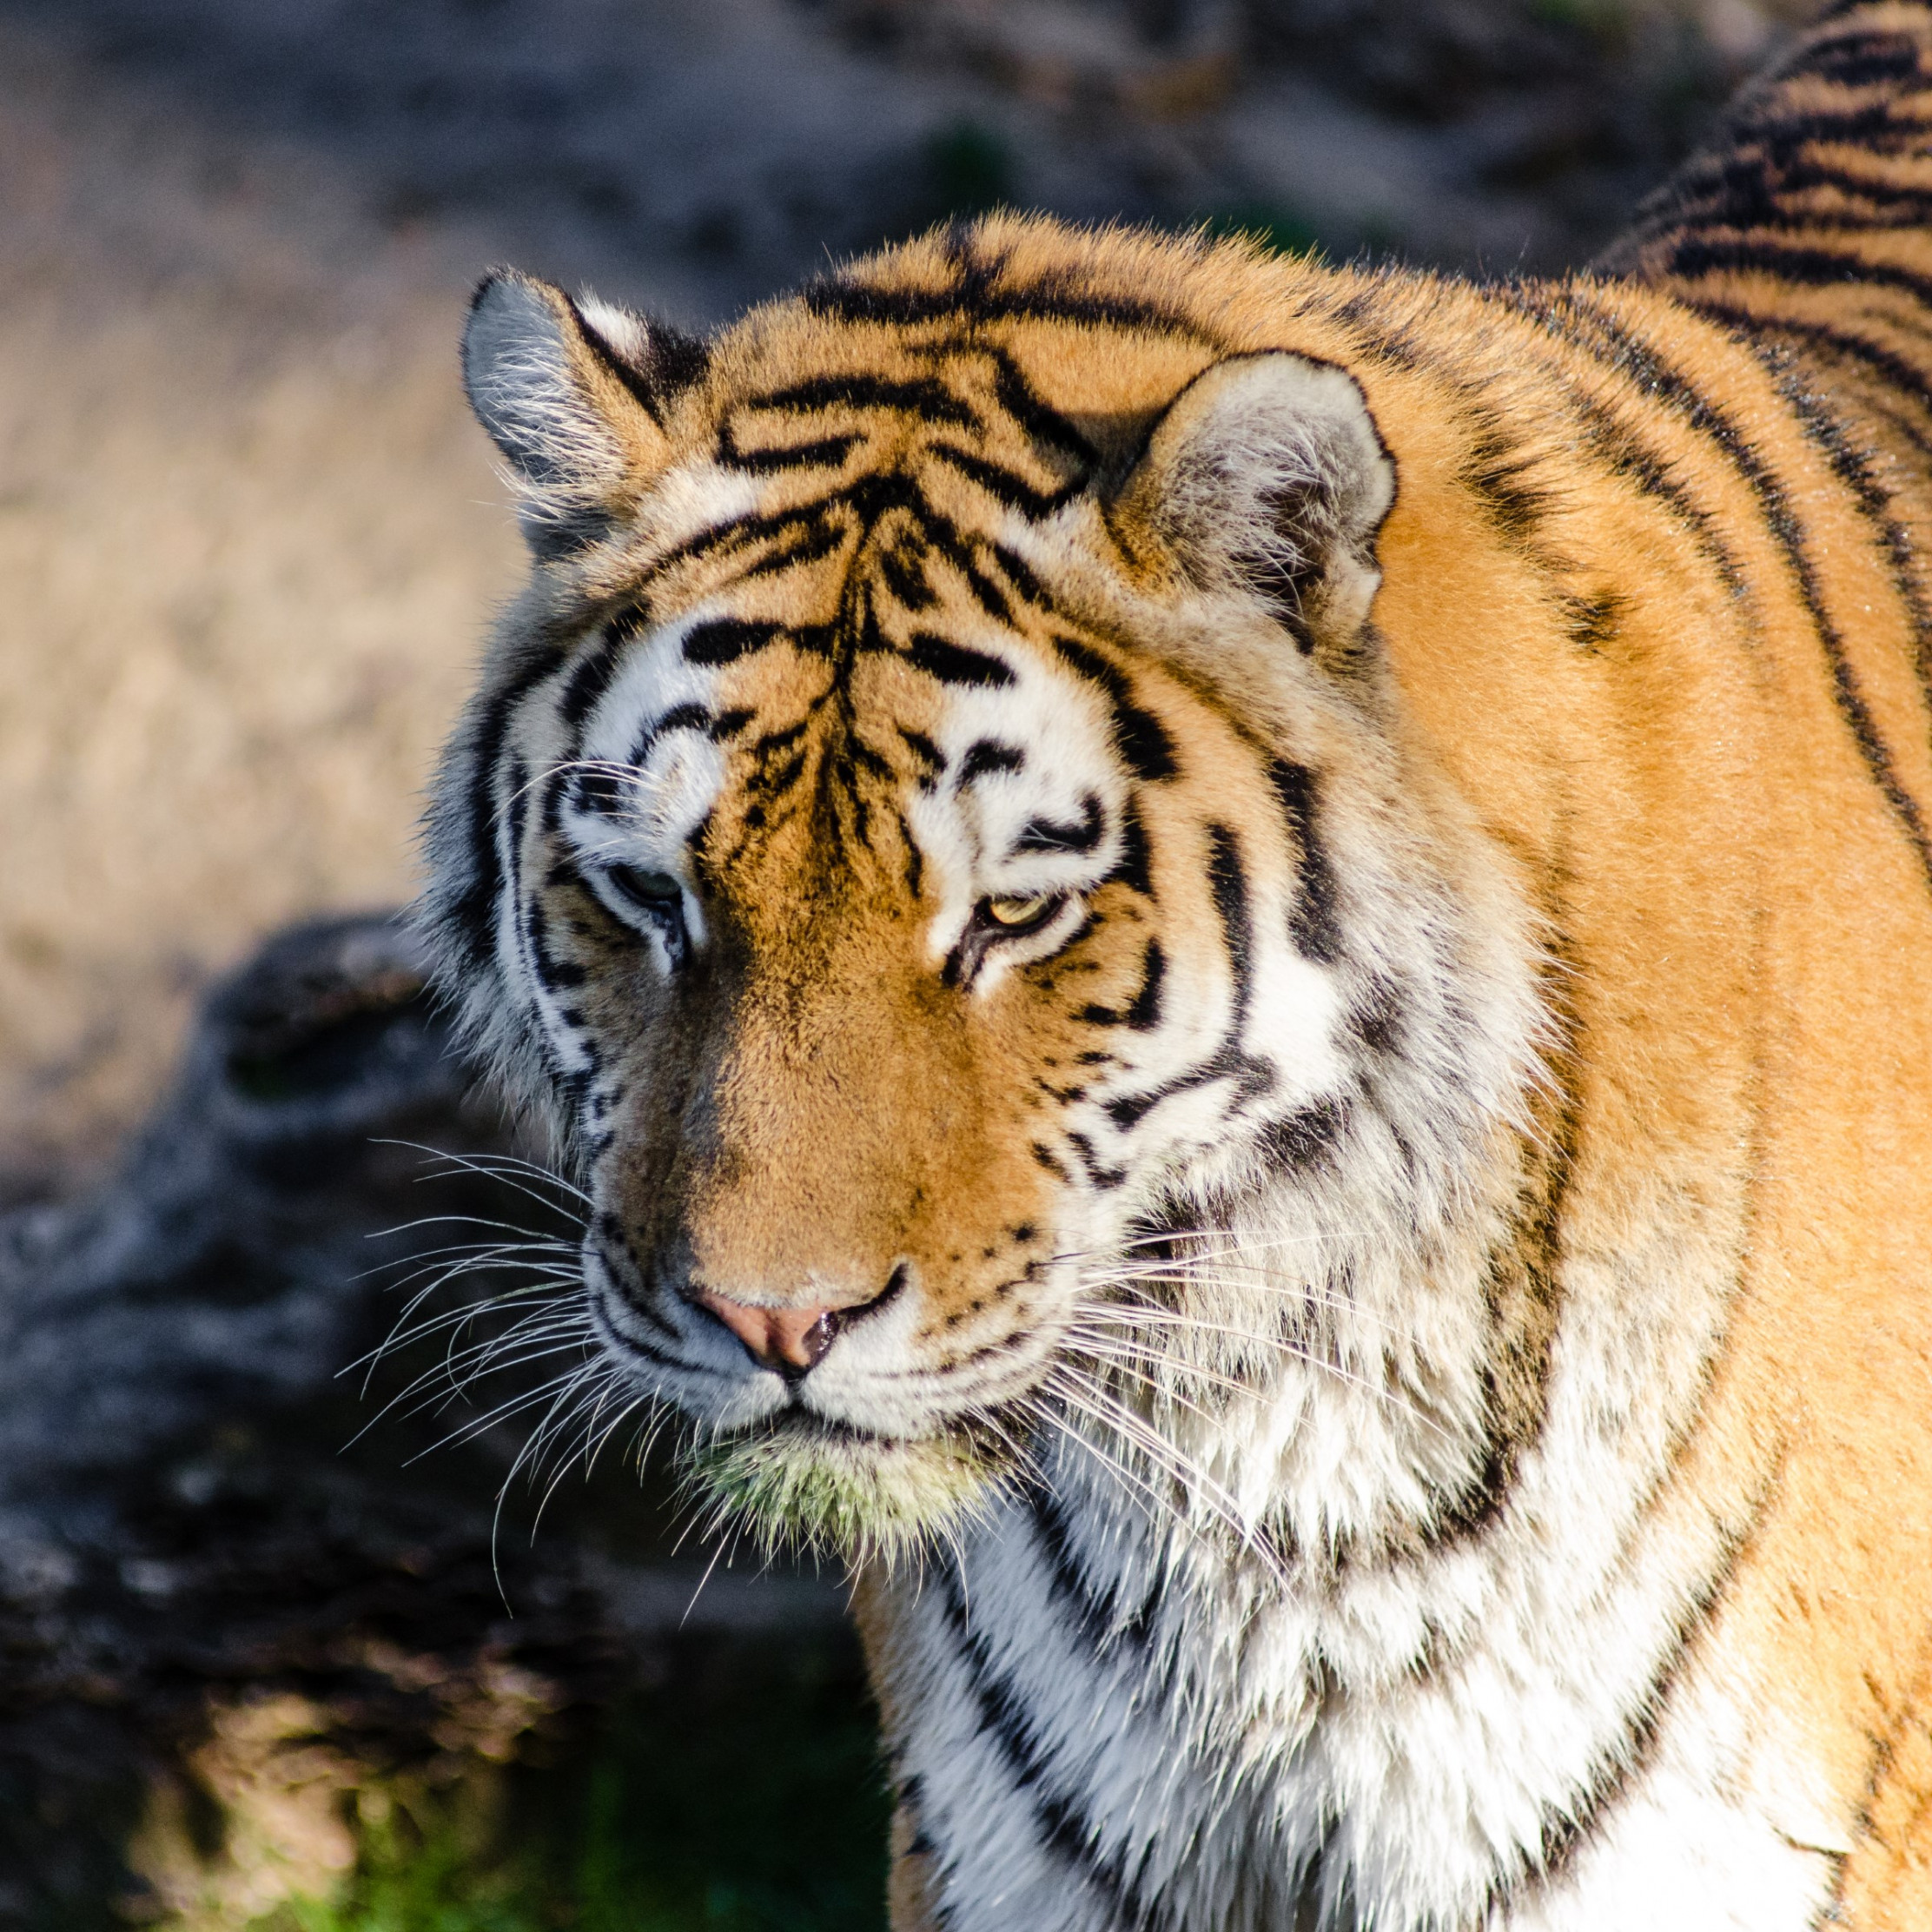 Siberian tiger at Zoo wallpaper 2224x2224